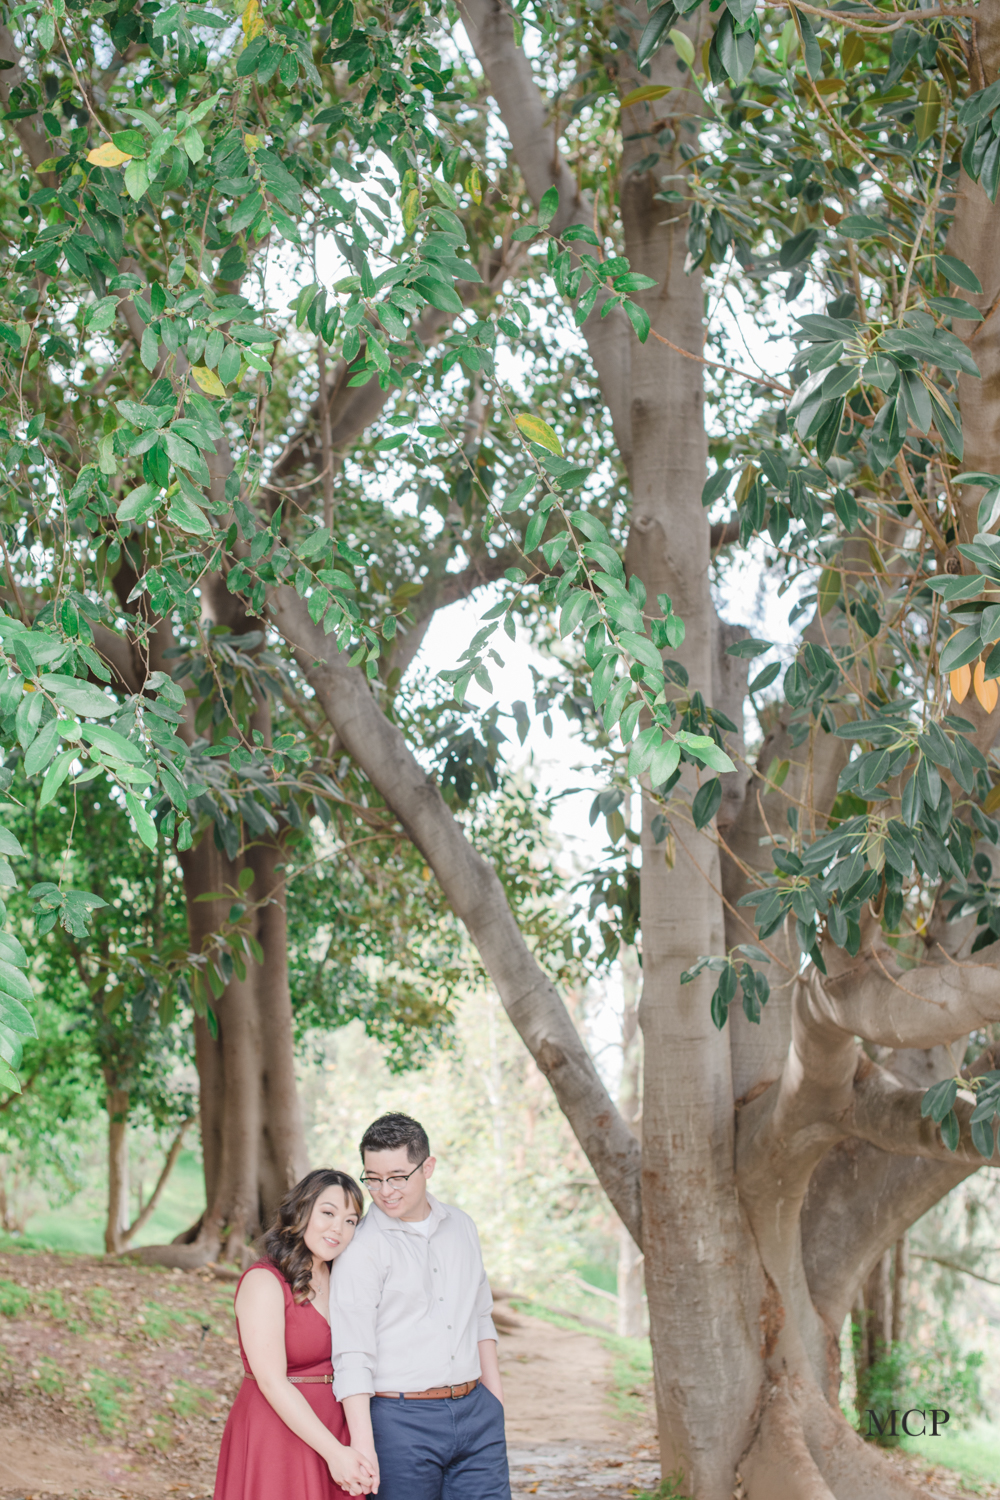 Stacey + Andrew Engagement BLOG-MCP6.jpg